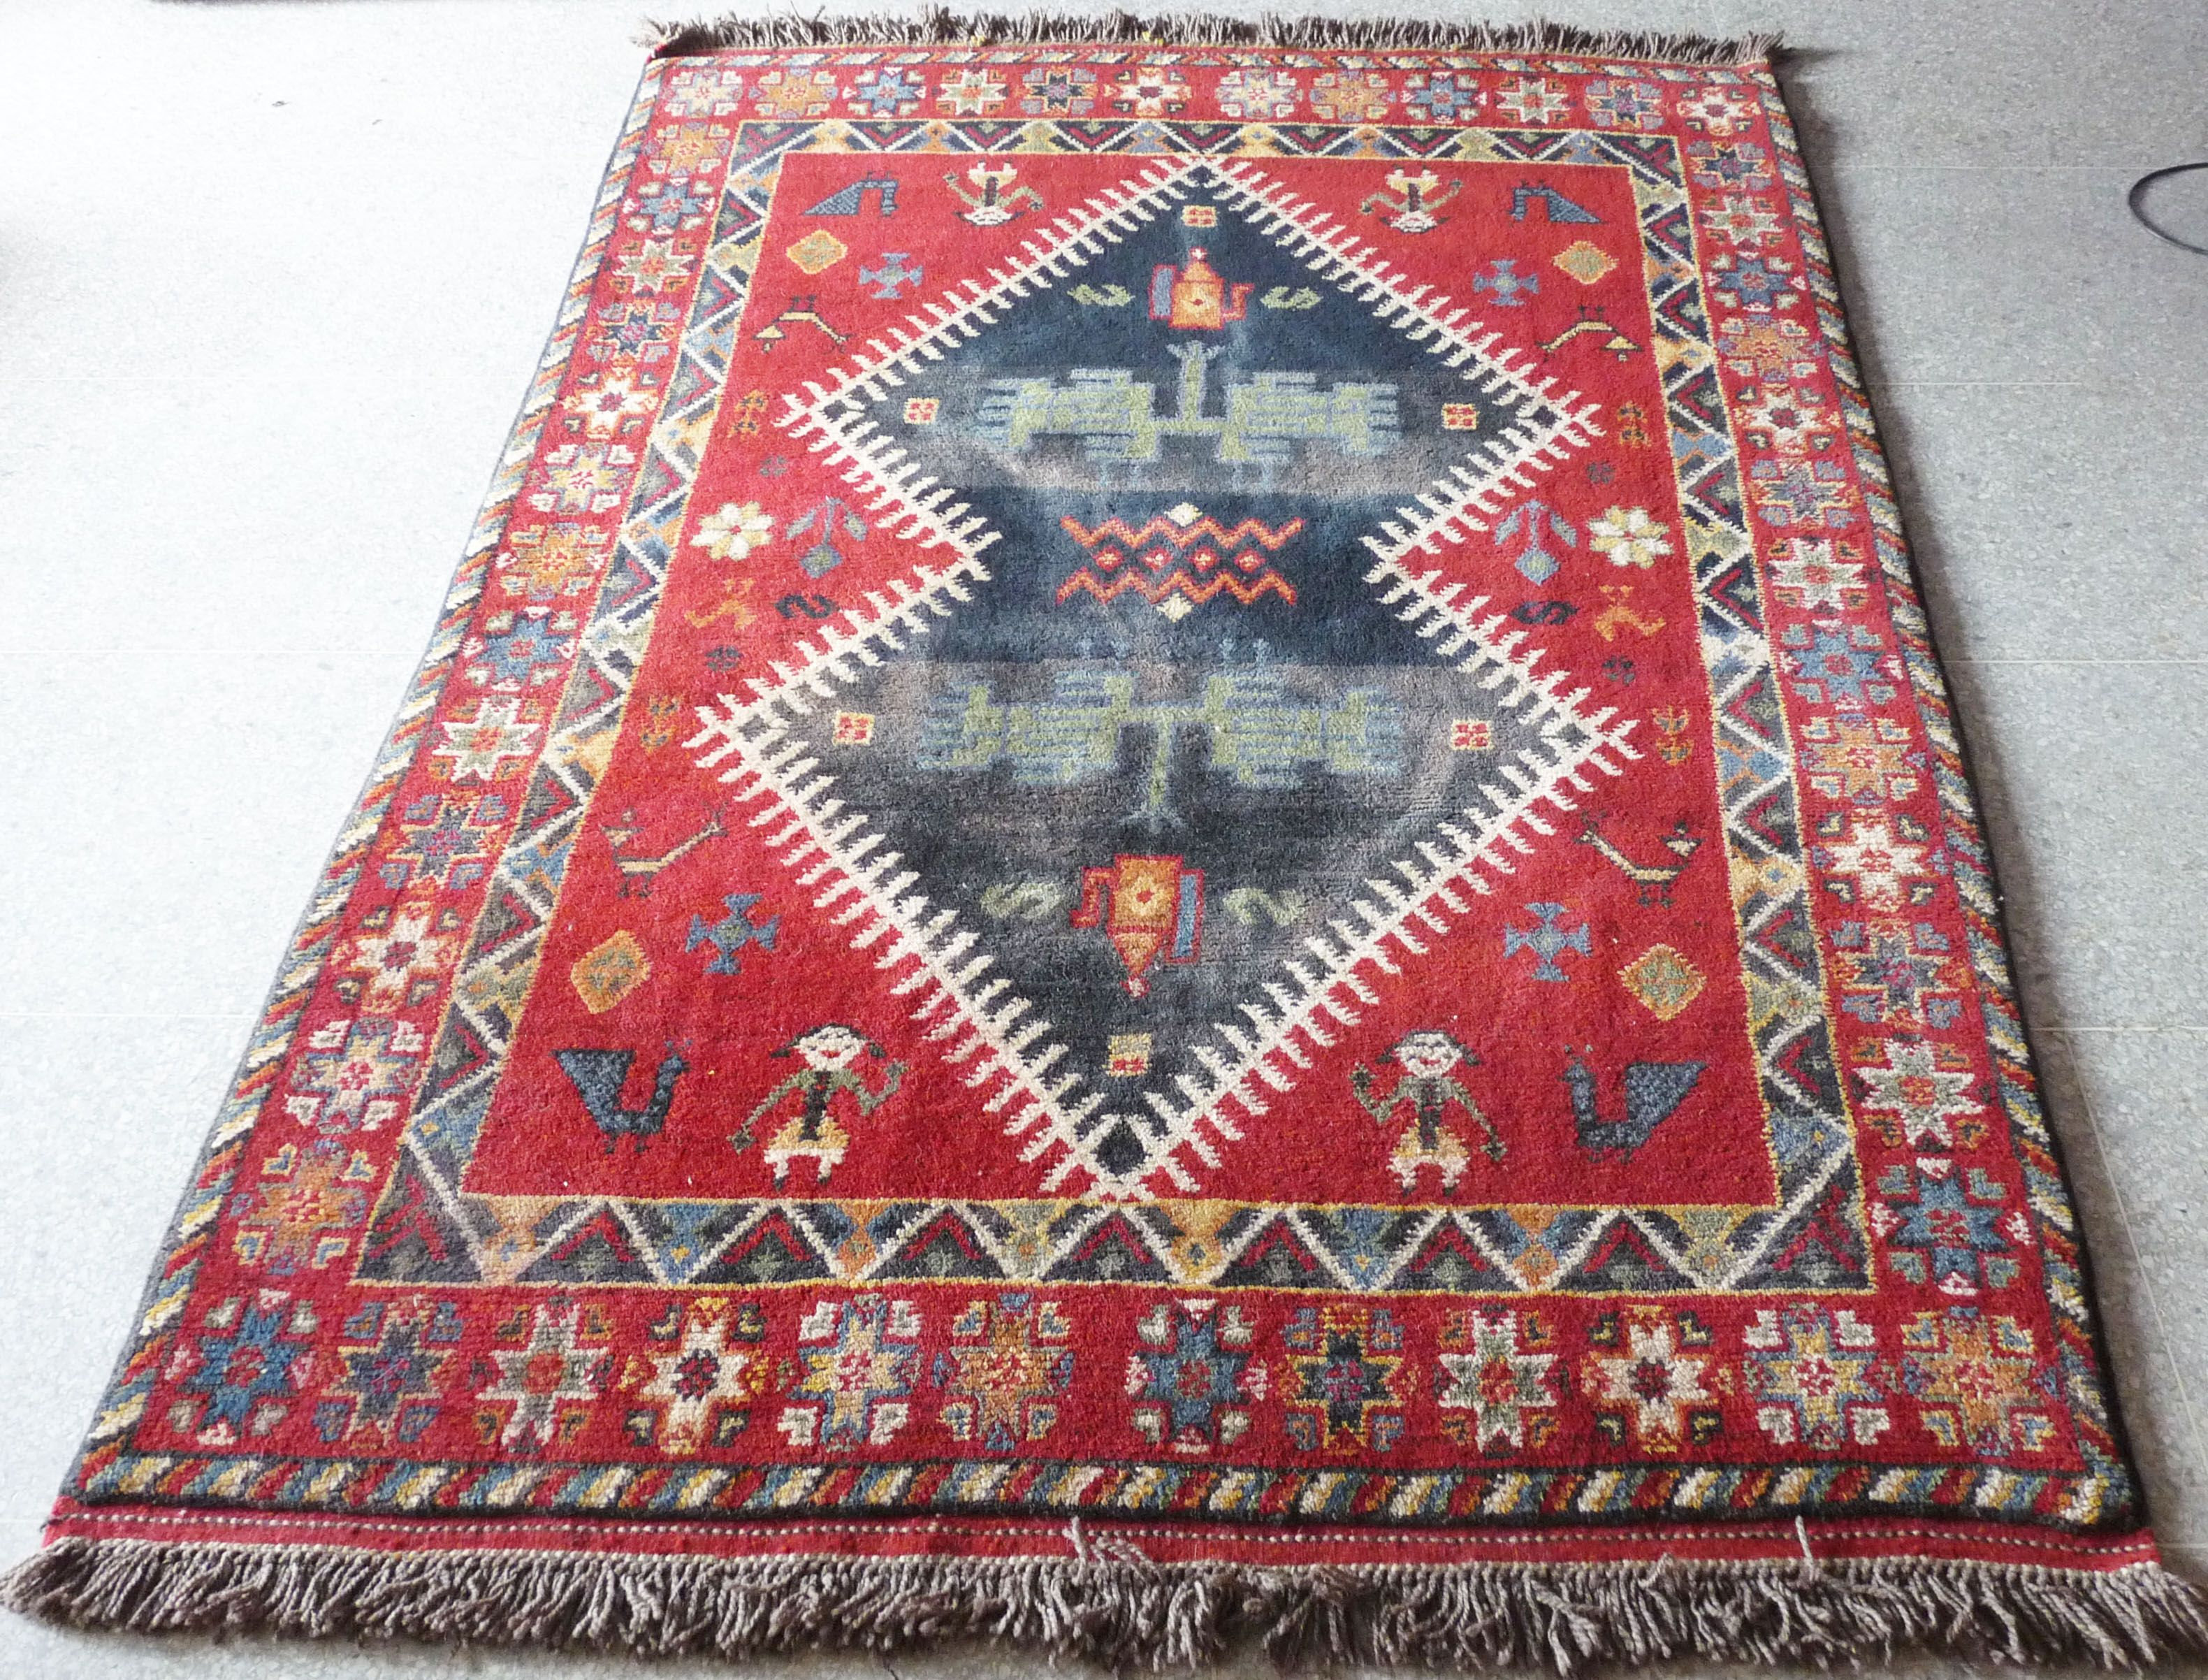 Intricate And Very Cute Motifs On This Glaoui Tribal Rug Handknotted To Perfection Handmade Moroccan Rugs 4